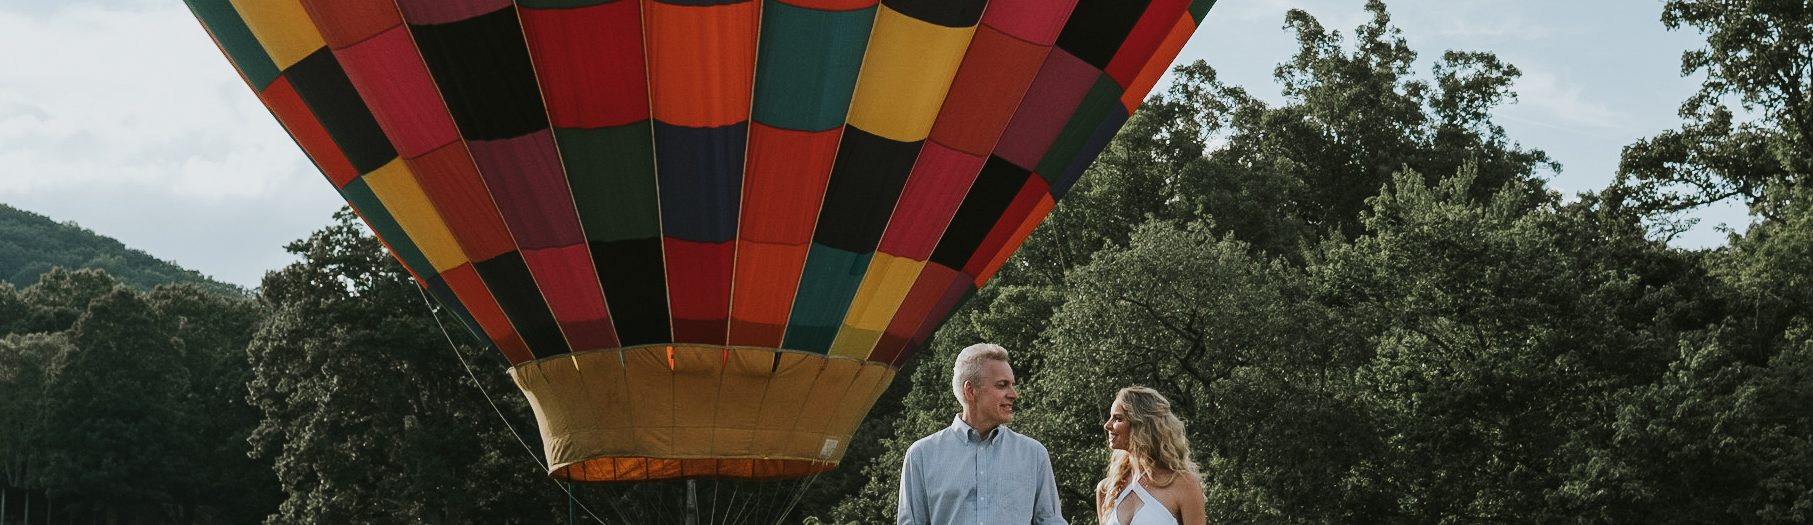 Jill + Dave | Hot Air Balloon Engagement Session